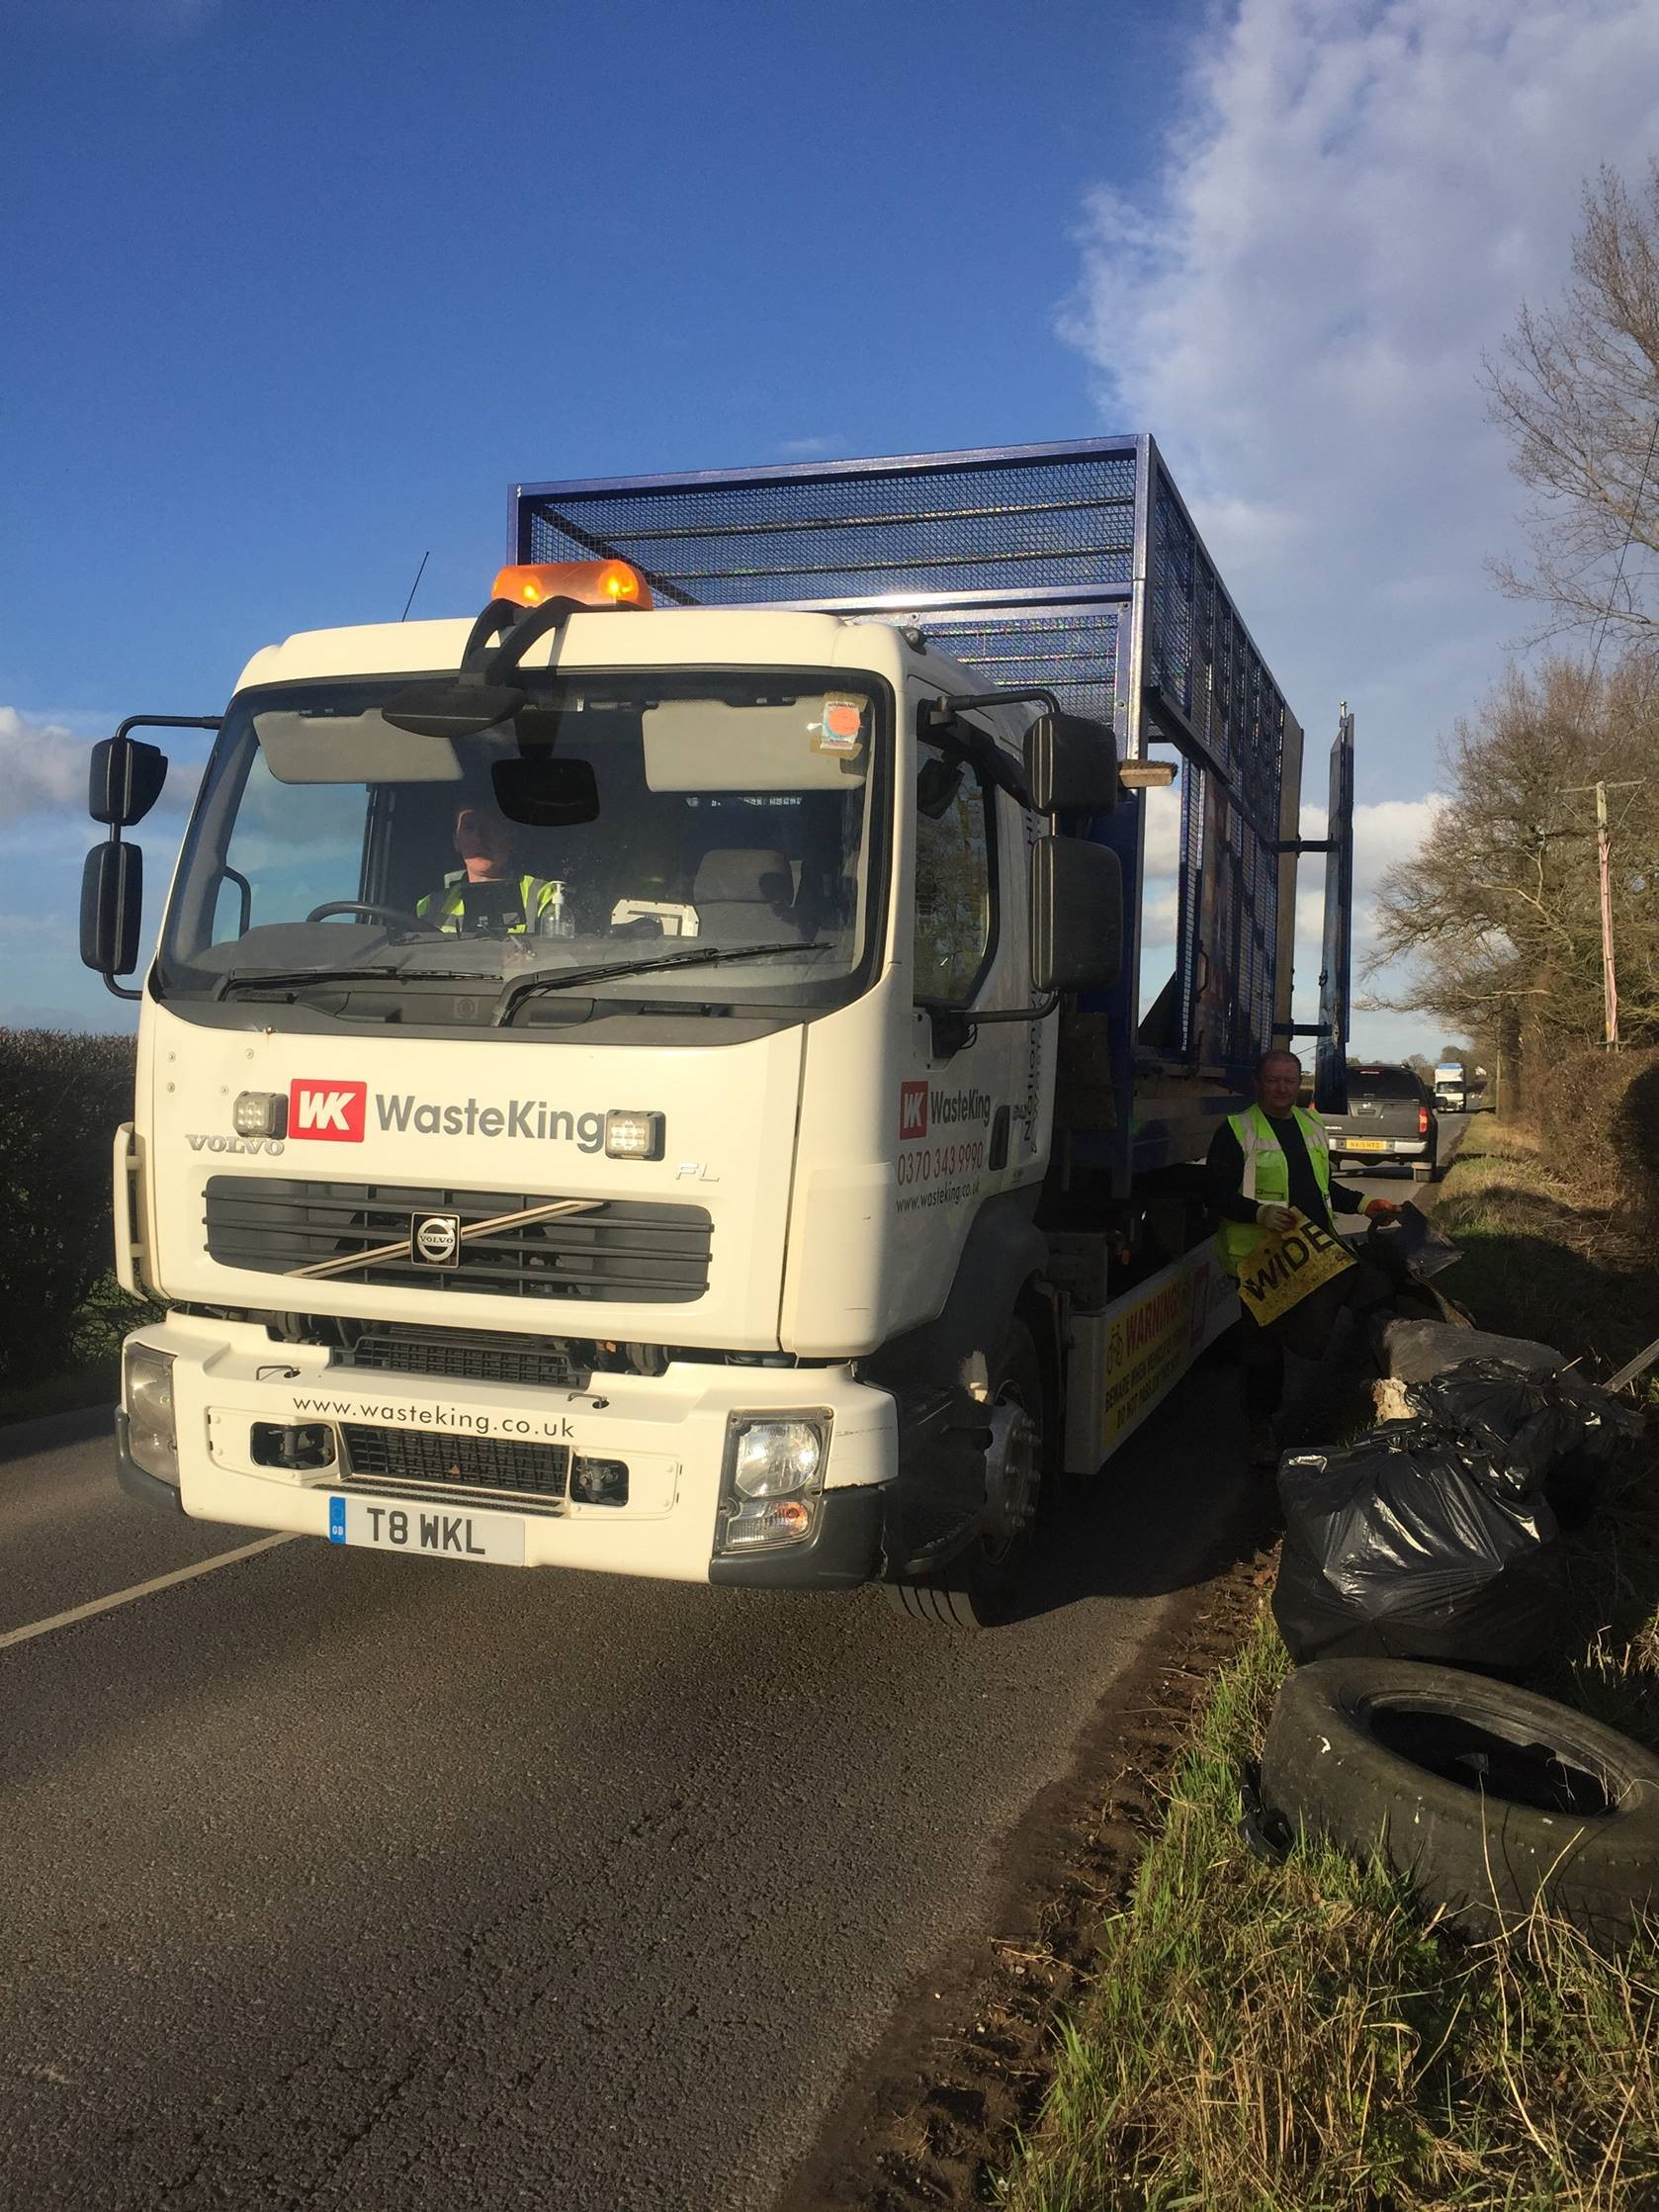 Waste King removes 180 sacks of waste after roadside litter-pick